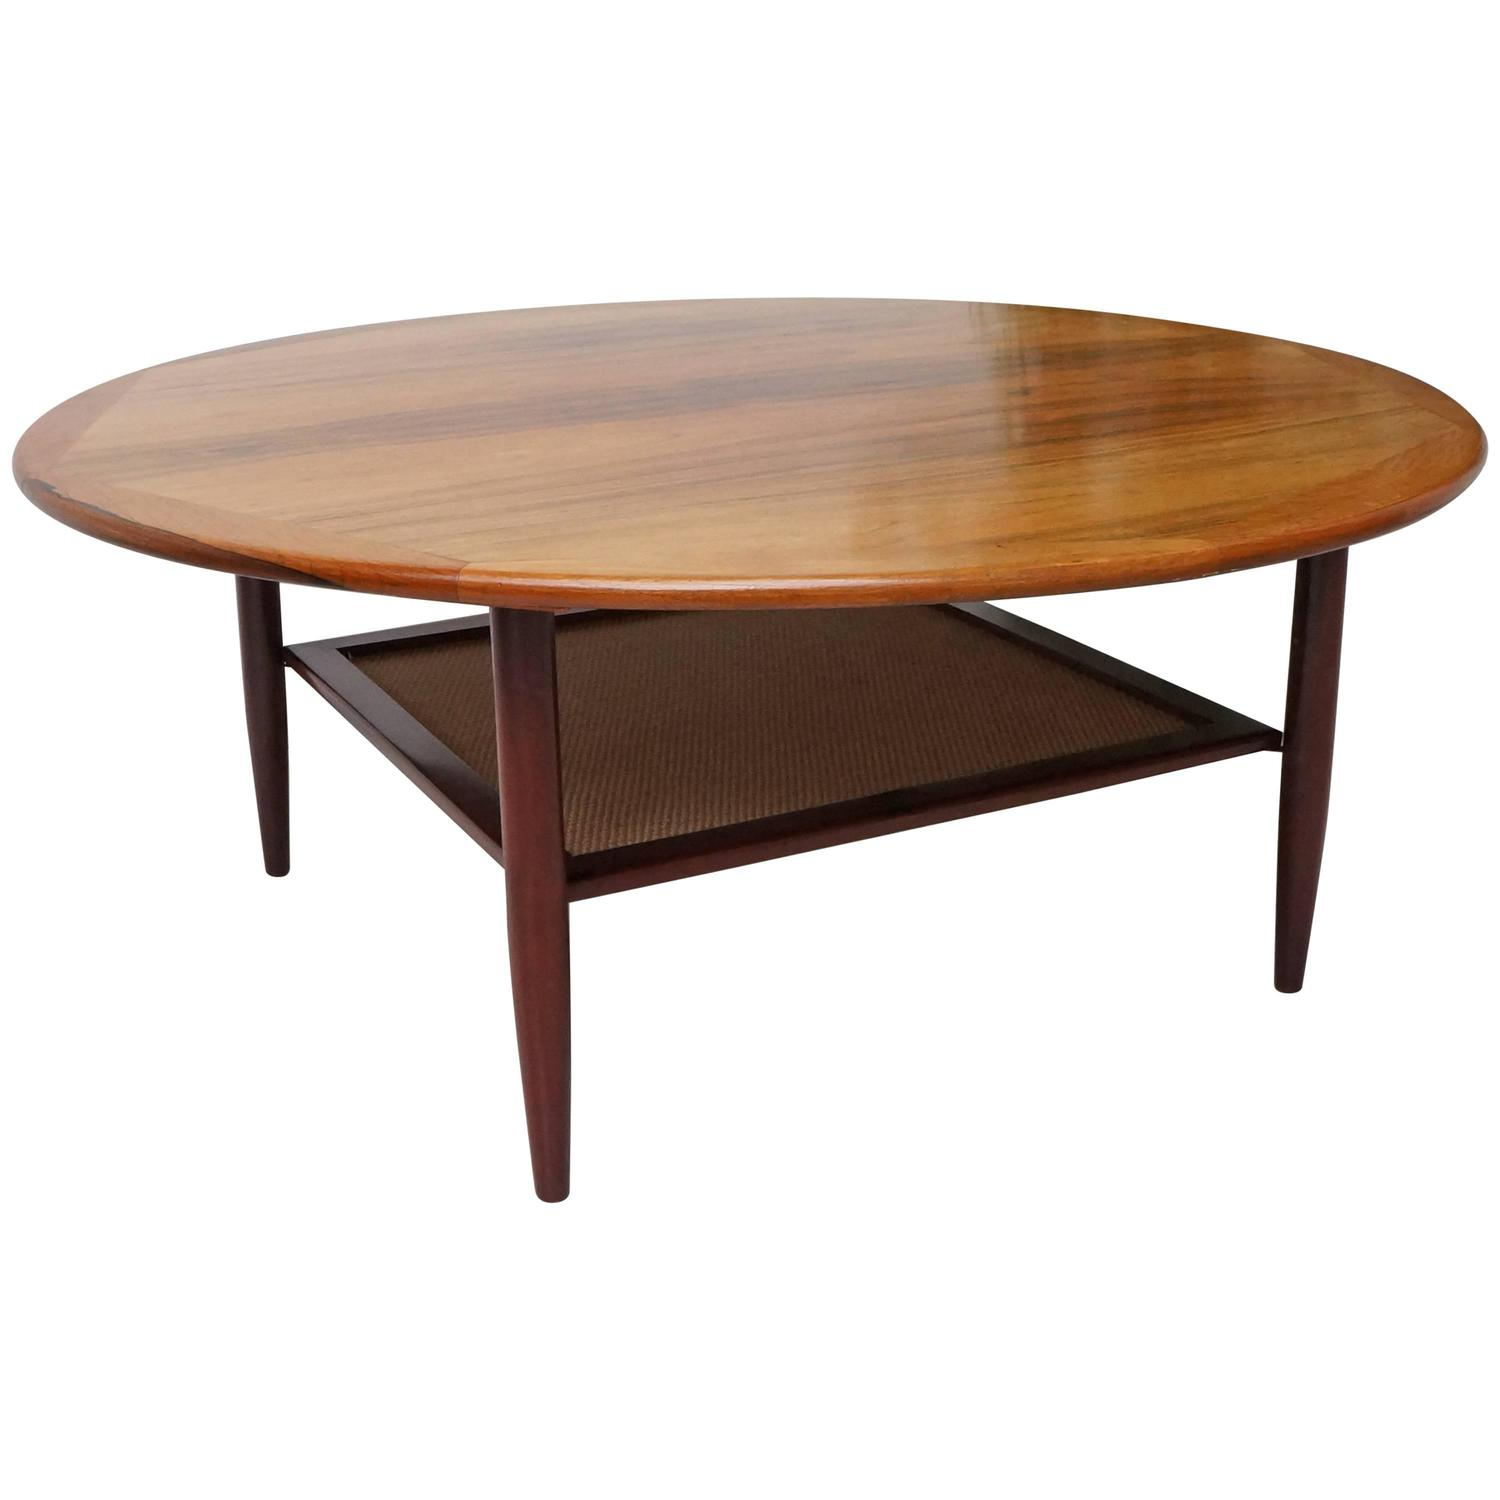 Large round wooden coffee table 1960s at 1stdibs for What is a coffee table